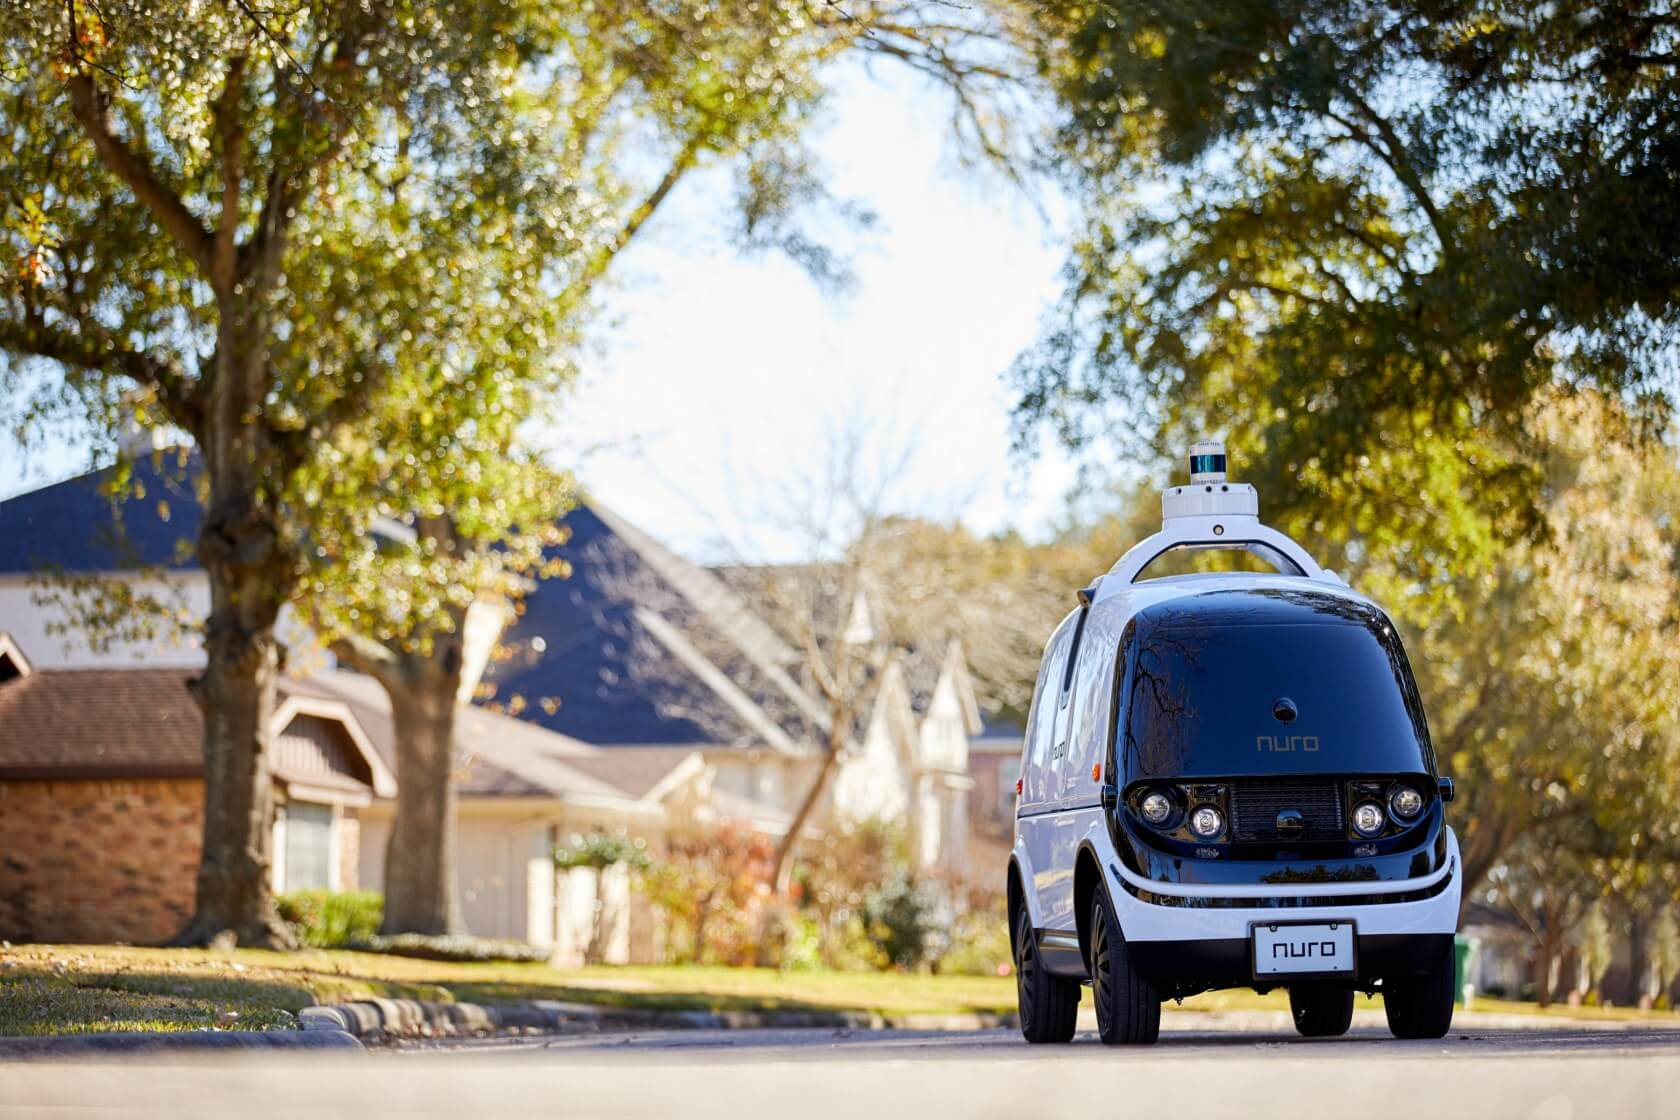 Nuro's R2 vehicle has been granted the NHTSA's first regulatory exemption for a custom self-driving car